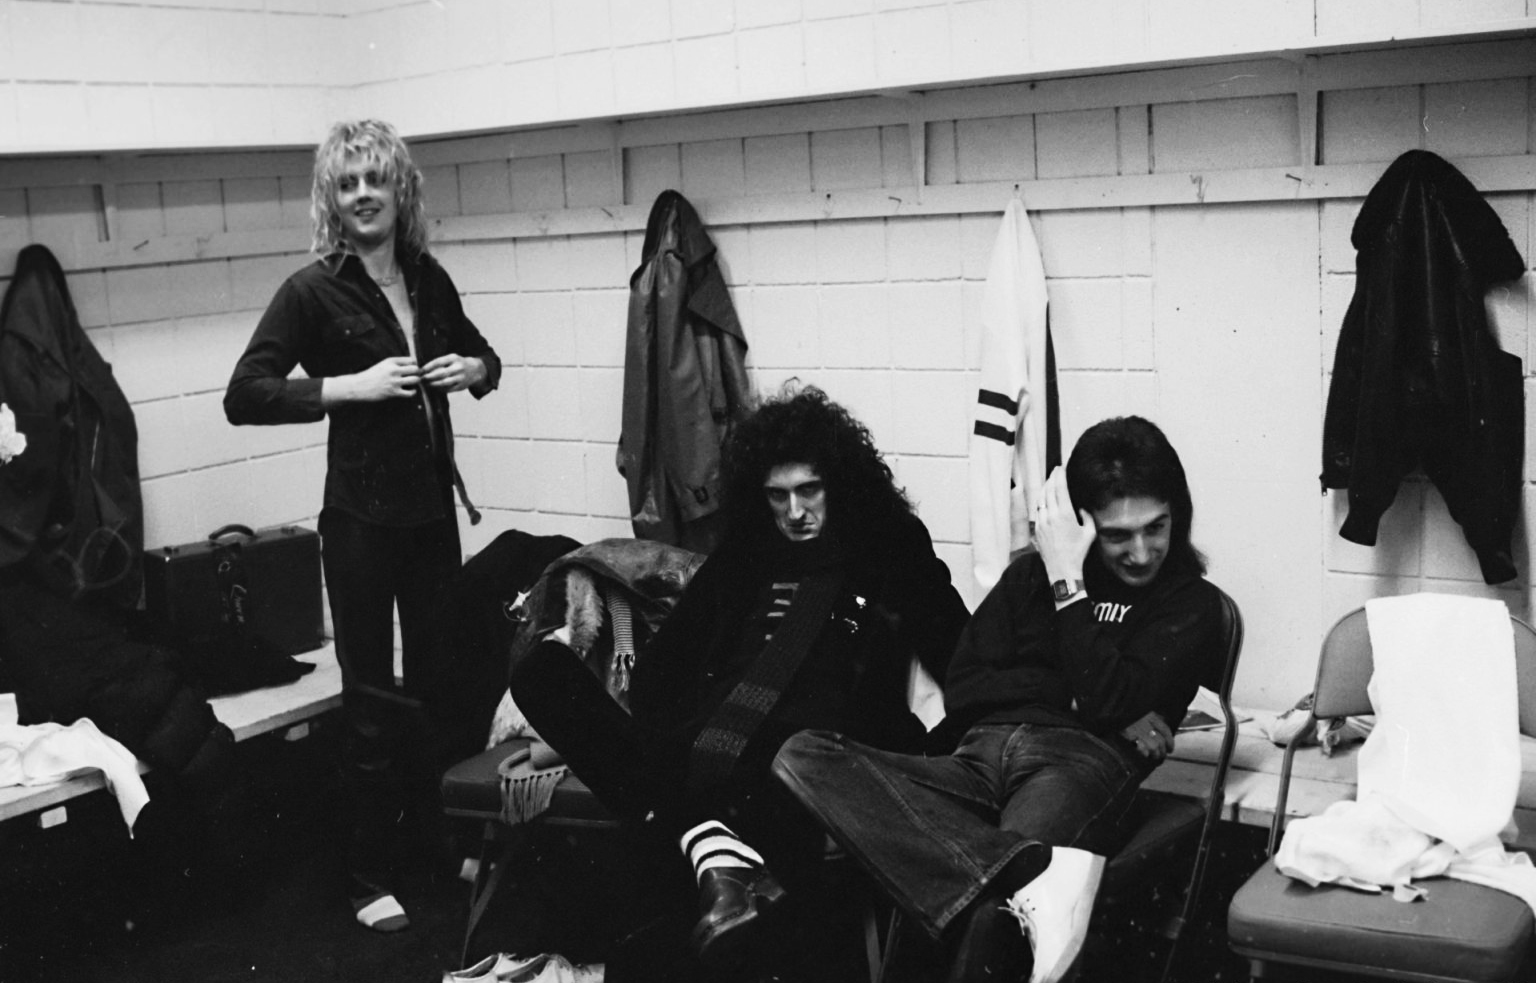 queen-backstage-at-the-montreal-forum-26-january-1977.jpg